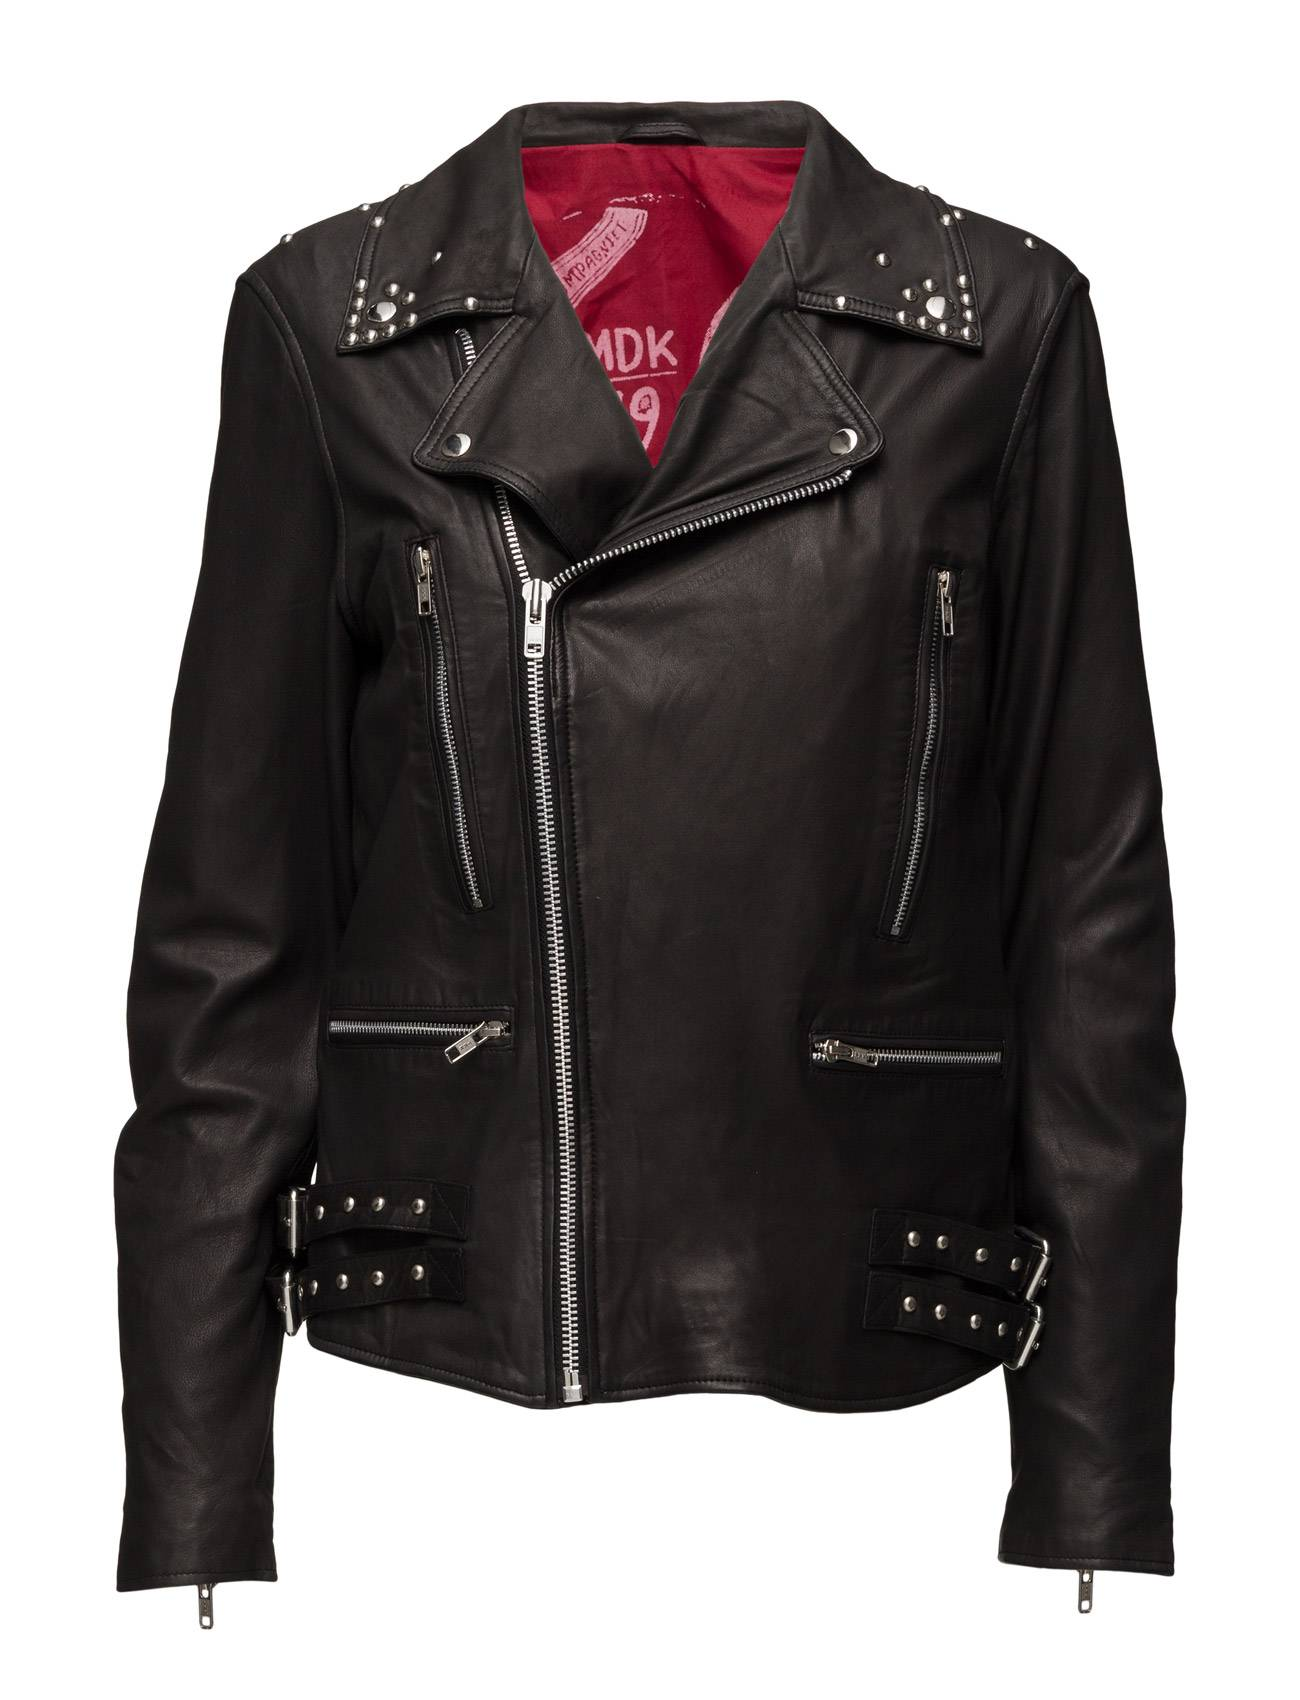 MDK / Munderingskompagniet Manila Leather Jacket (Black)